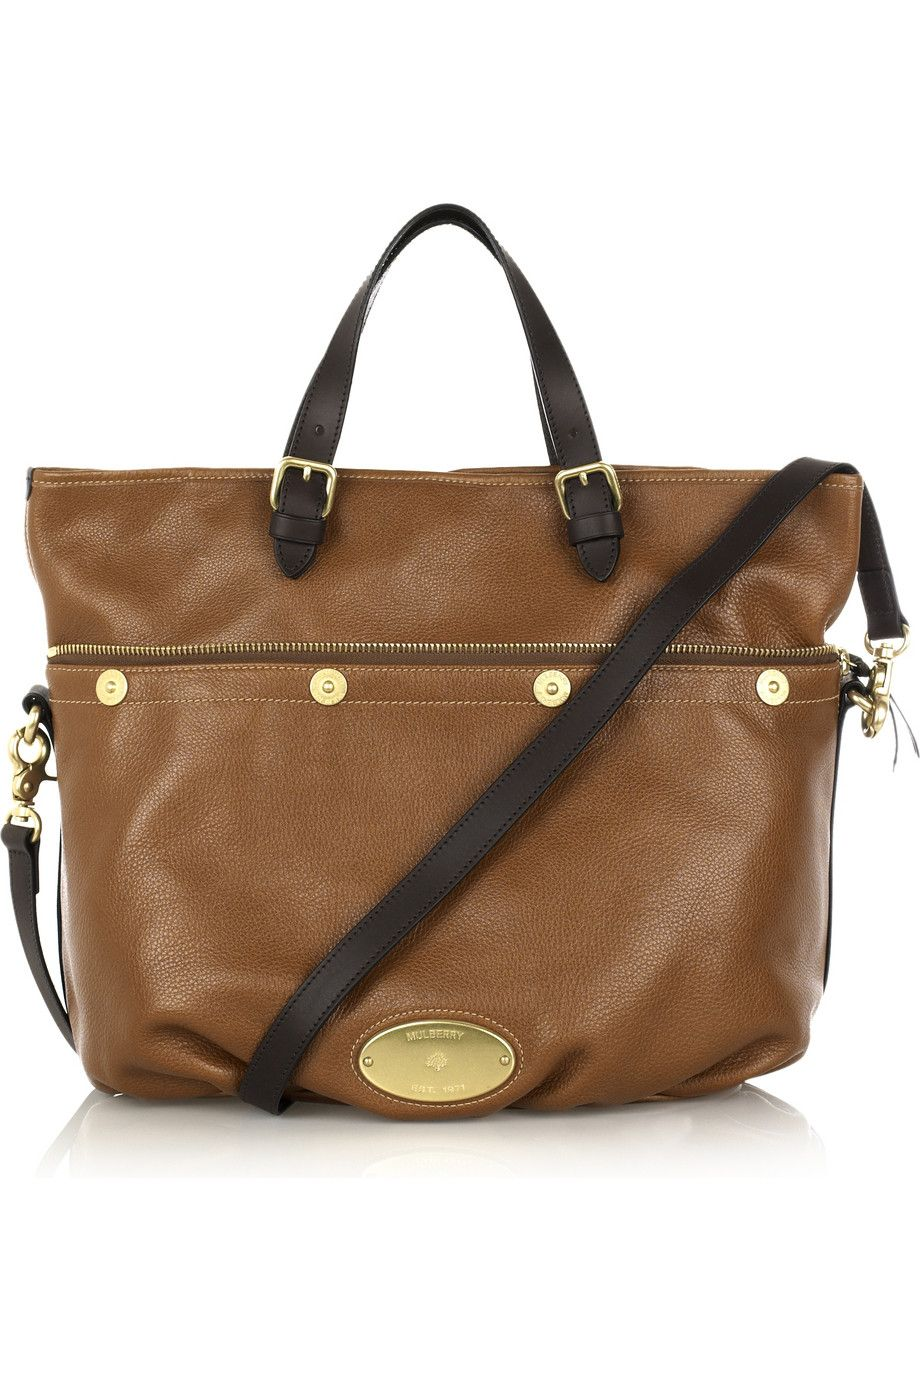 742ce36bcf Mitzy Tote - my first bag! One Bag